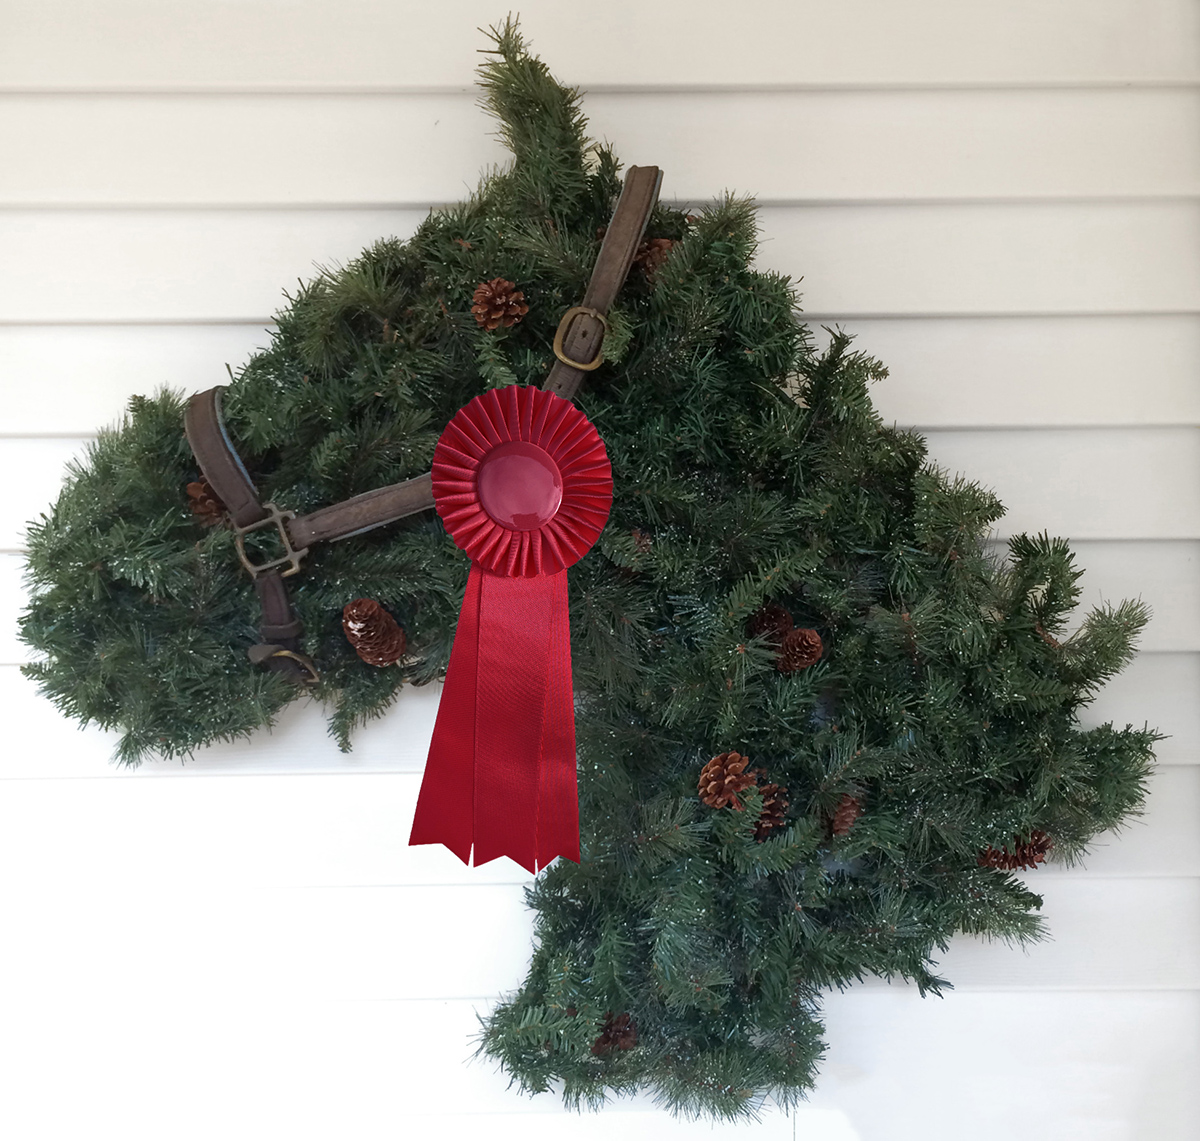 Red horse show ribbons on a horse wreath are fun and festive